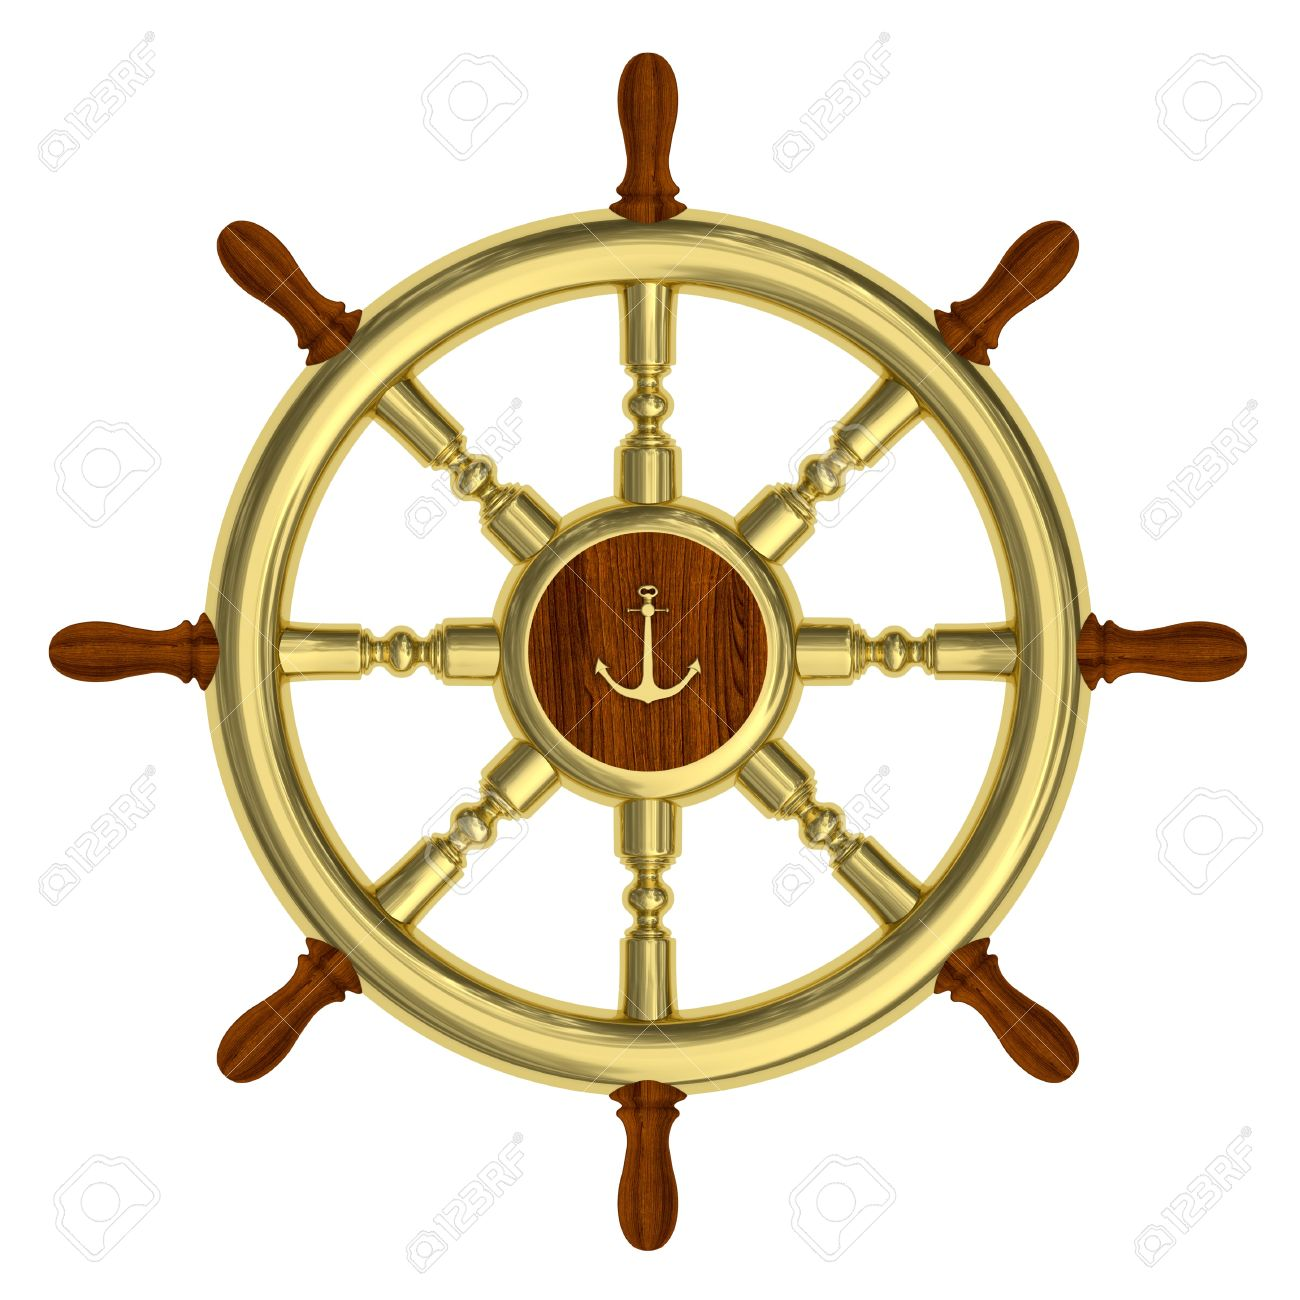 1300x1300 6,371 Ship Steering Wheel Stock Vector Illustration And Royalty